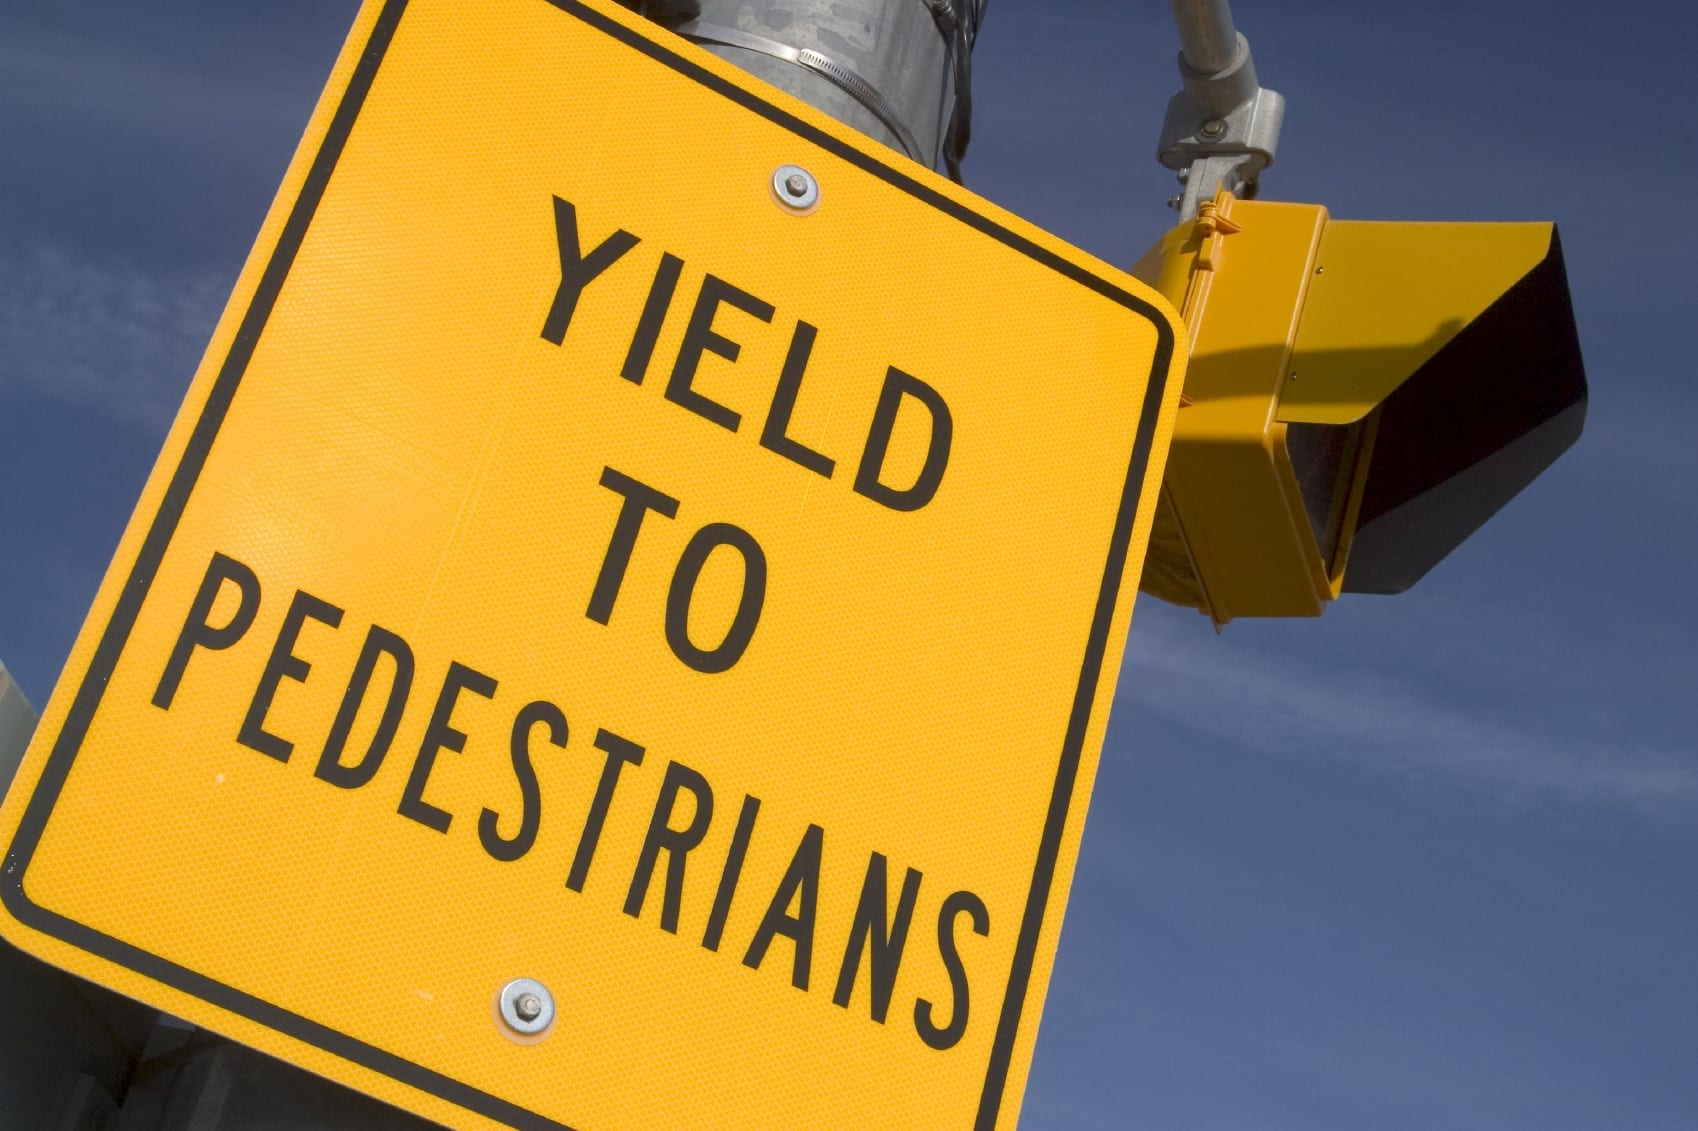 Yield To Pedestrians Sign Stock Photo